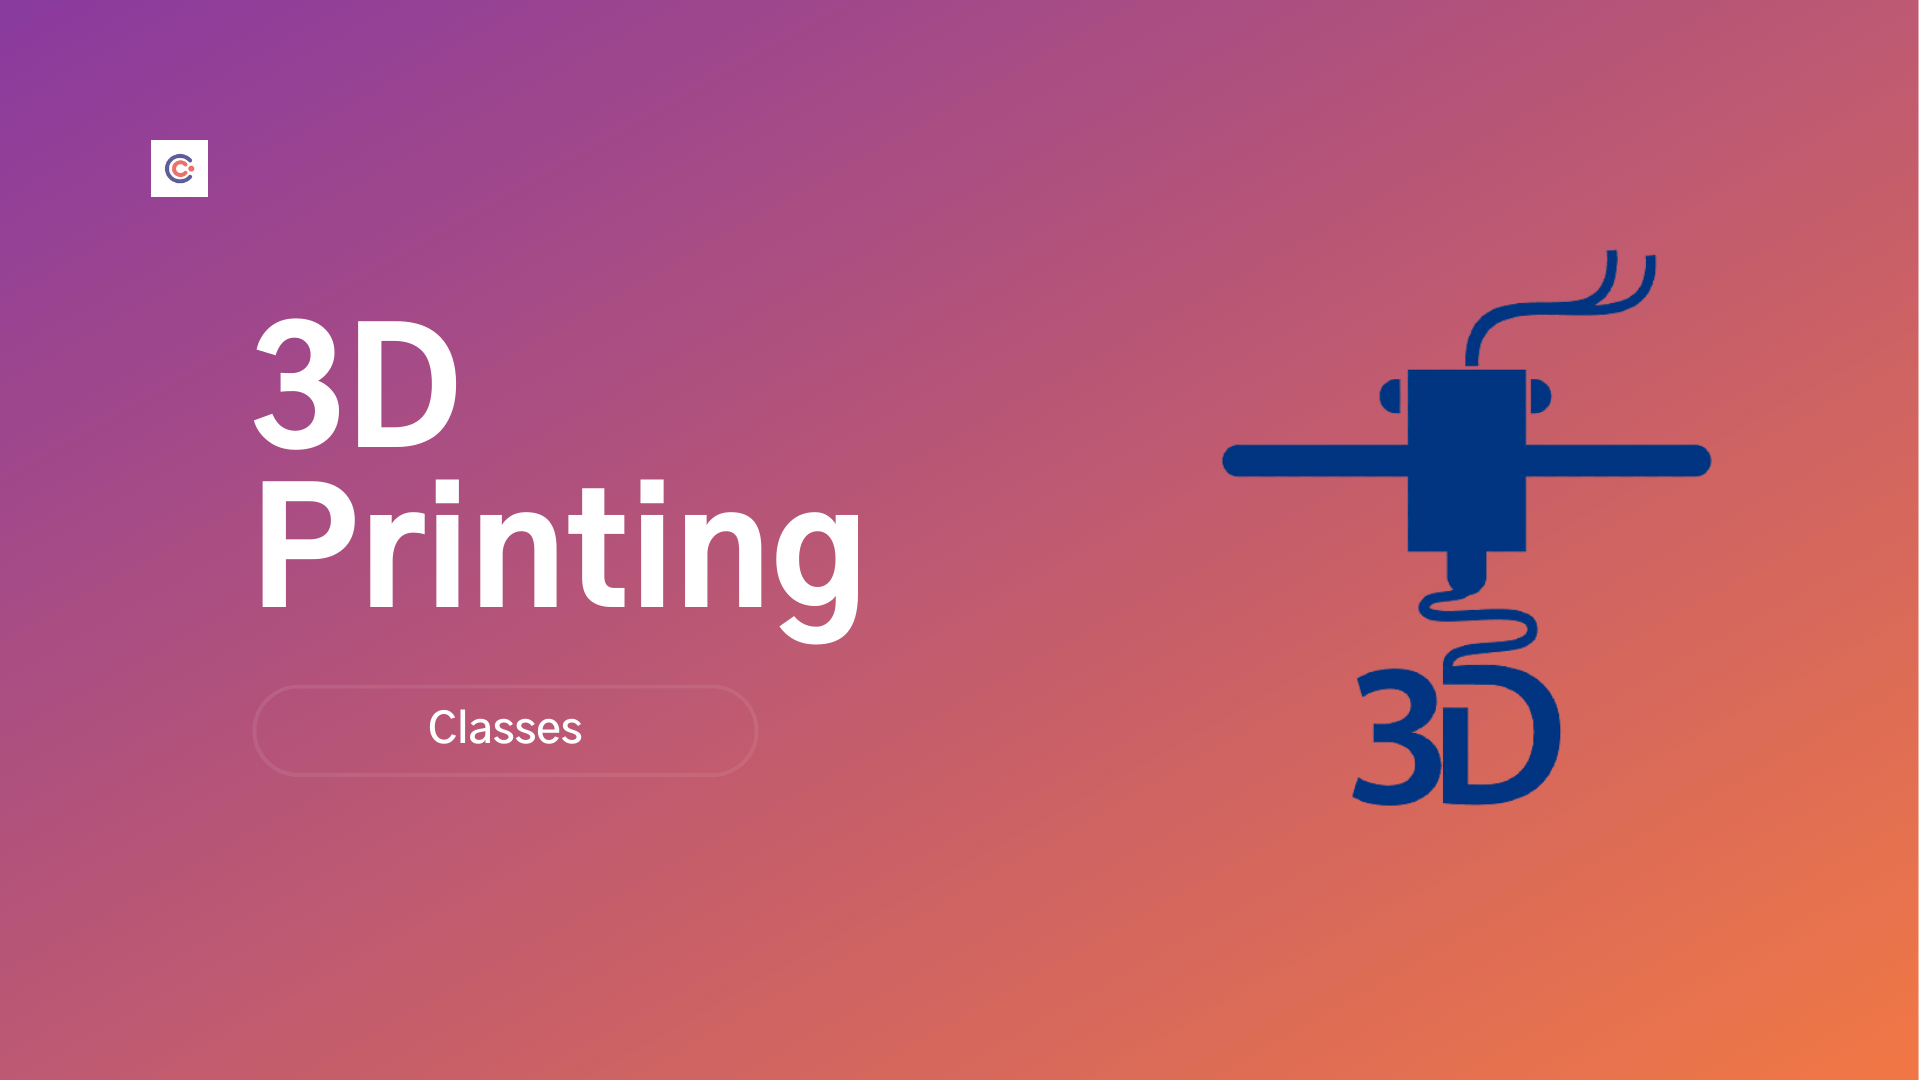 9 Best 3D Printing Courses & Classes - Learn 3D Printing Online